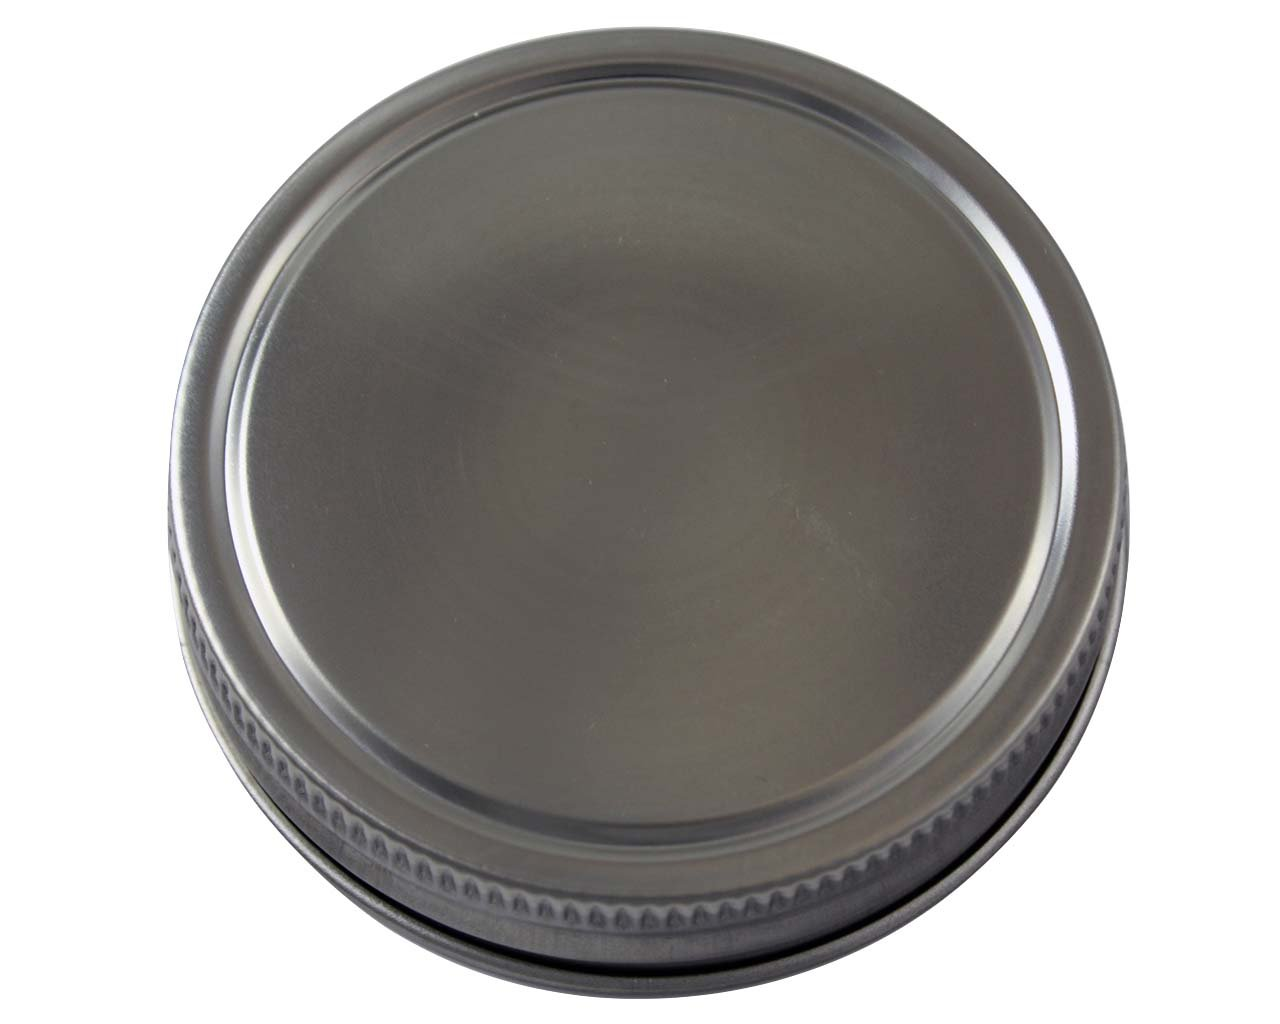 Stainless Steel Storage Lids Caps with Silicone Seals for Mason Jars (5 Pack, Regular Mouth)